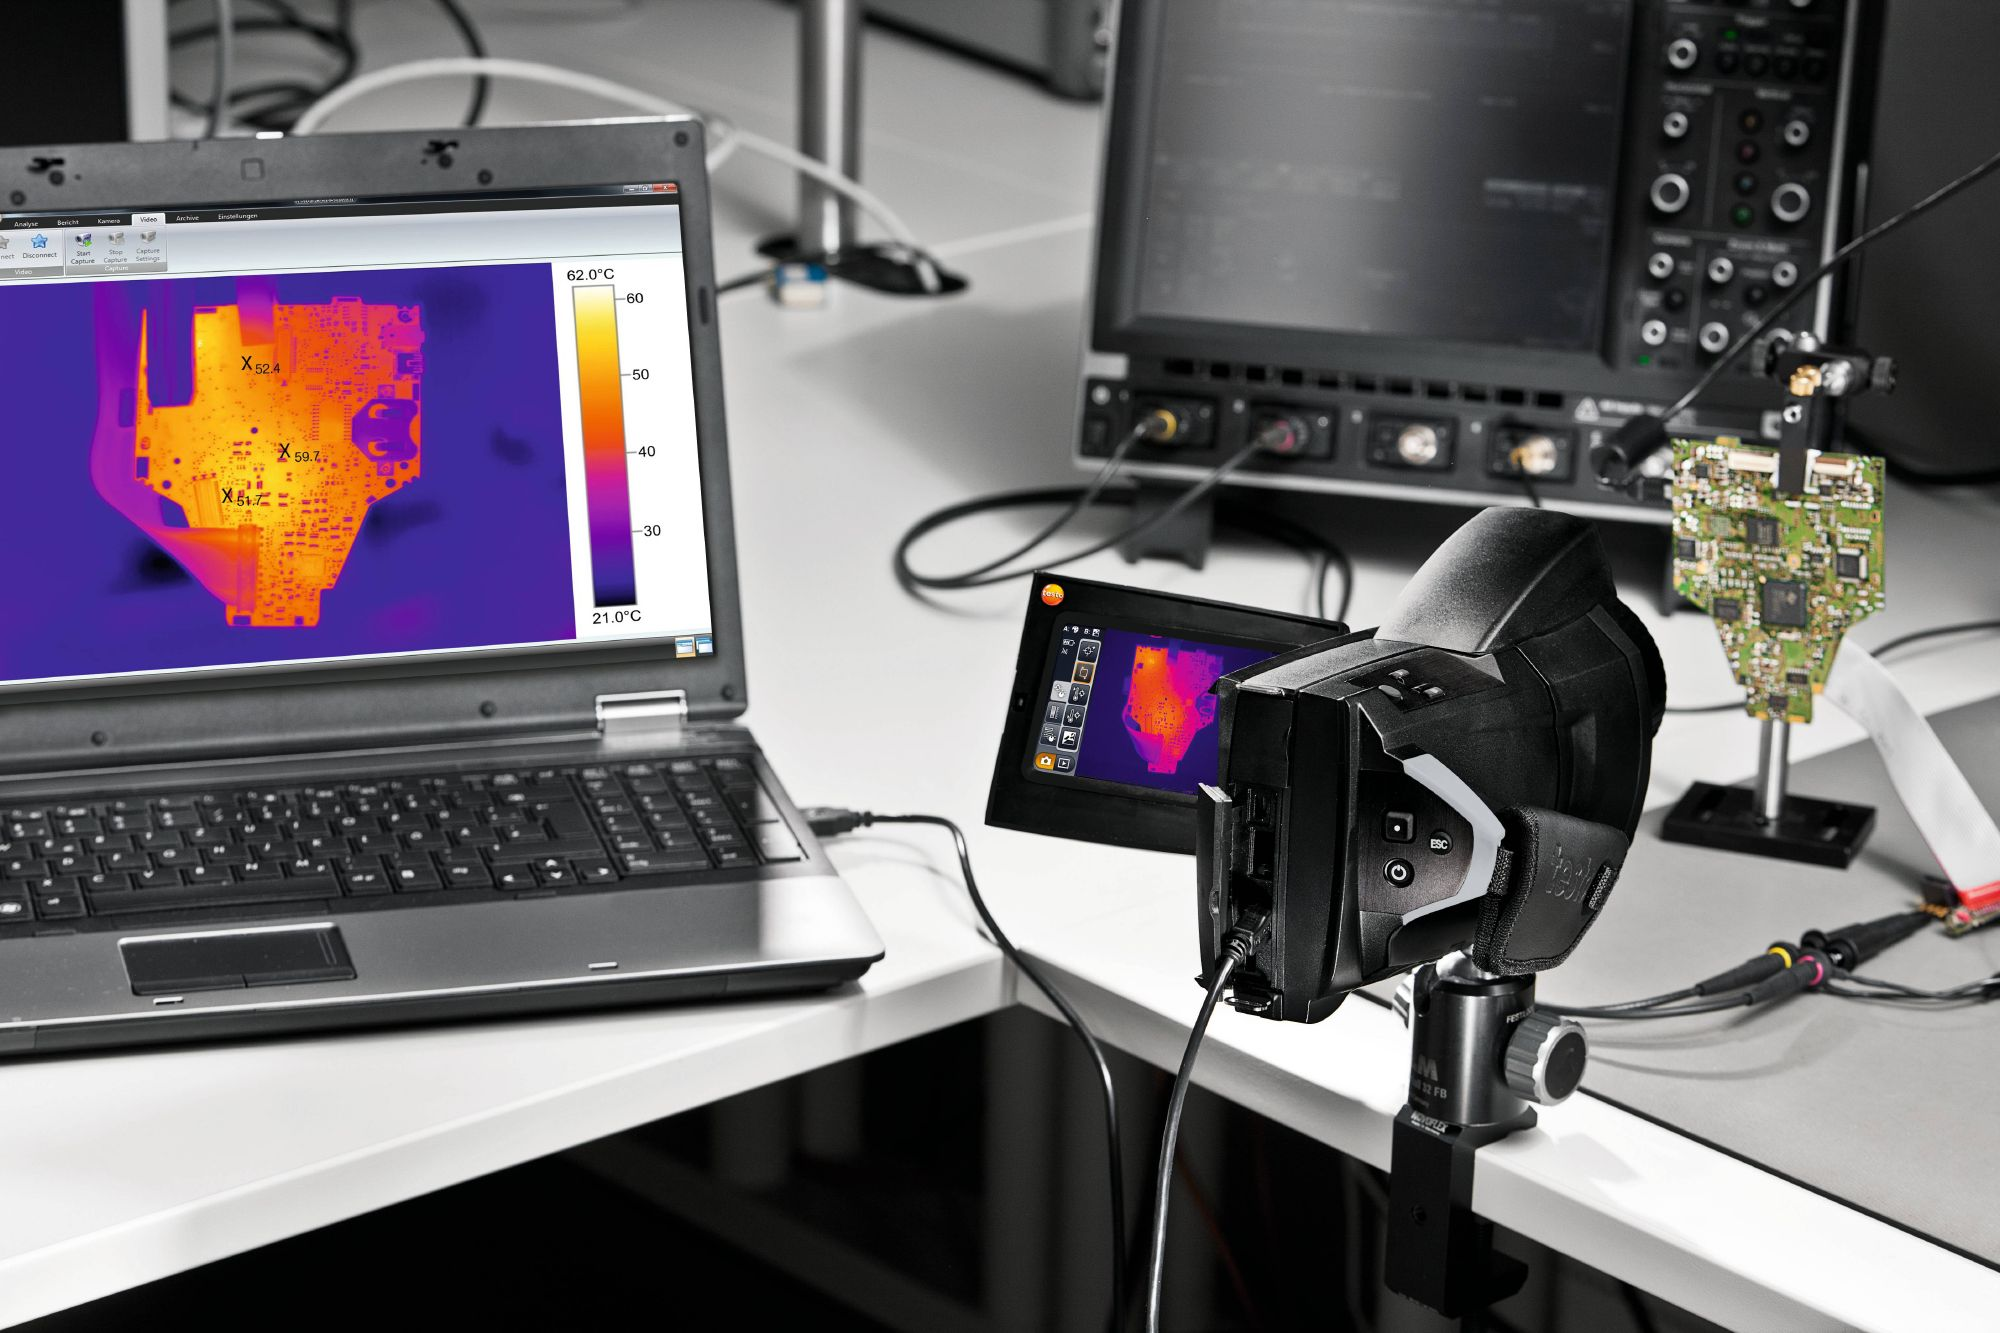 testo-890-application-thermography-002555.jpg